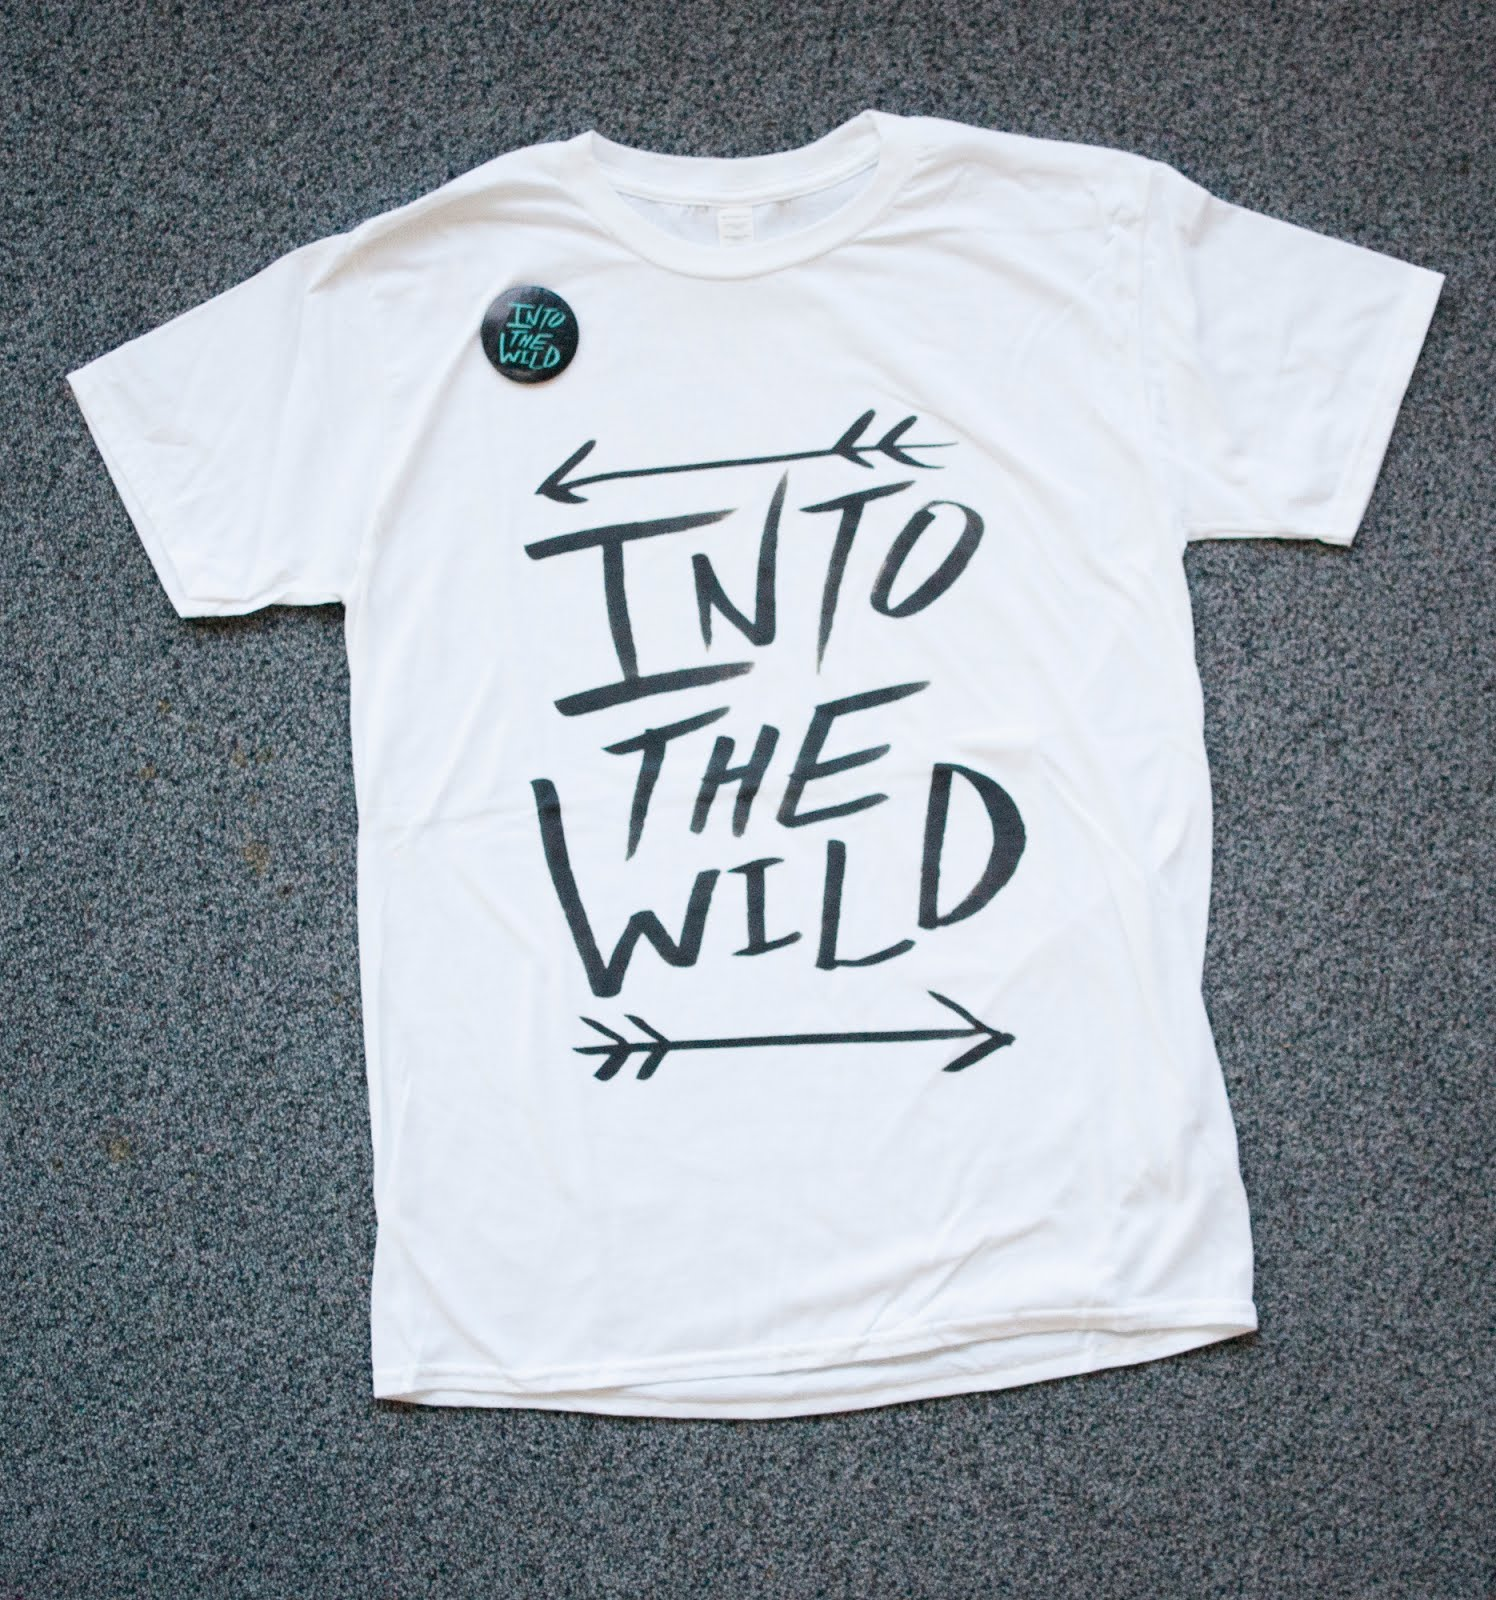 T-shirt_into_the_wild_leah_flores